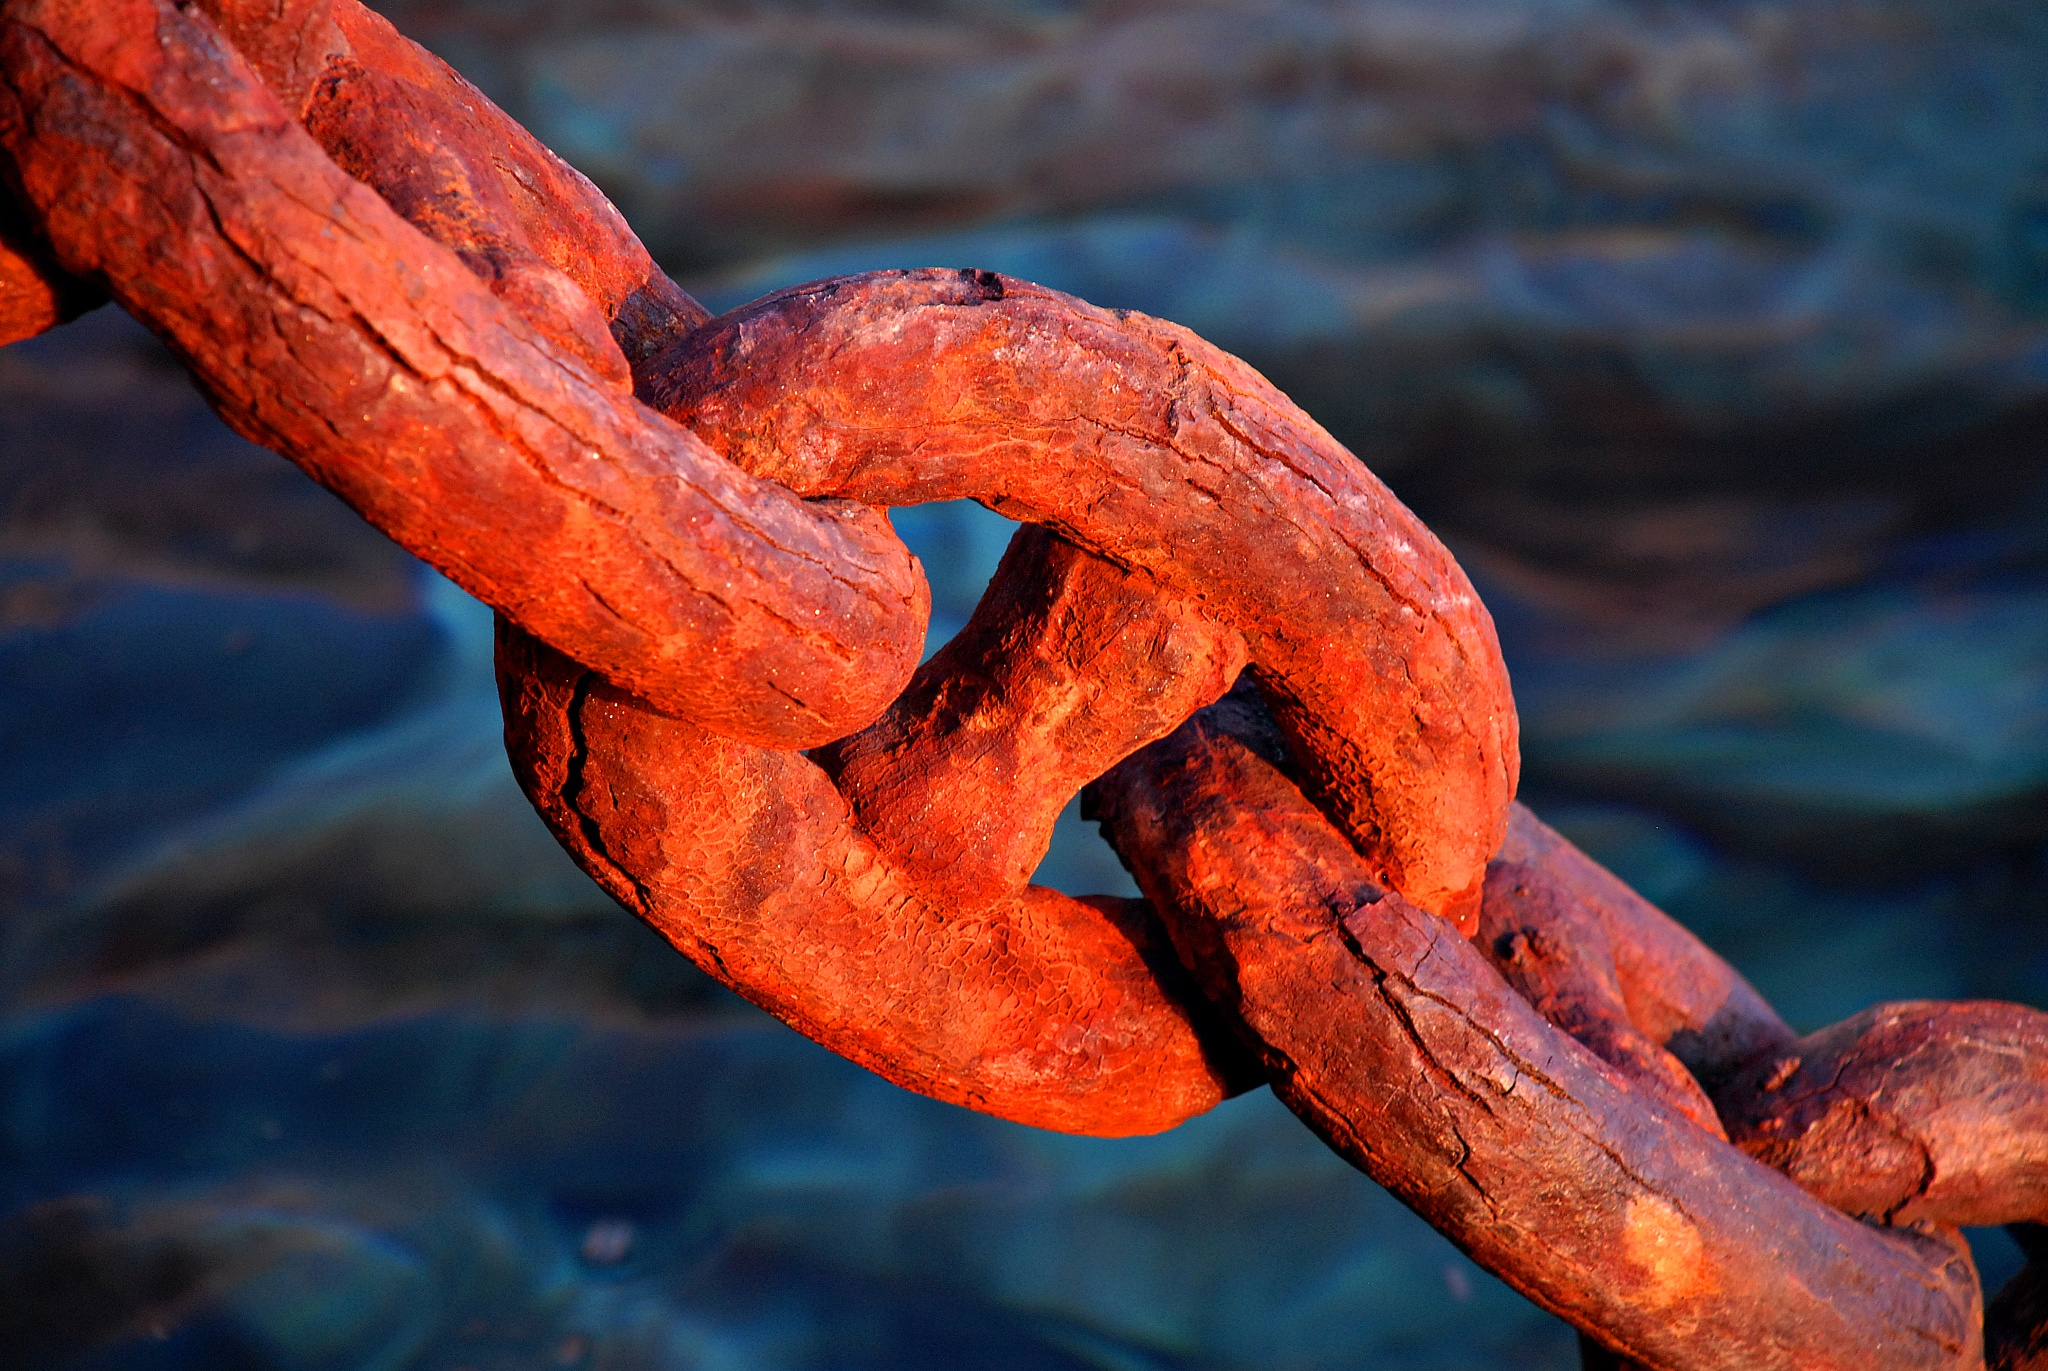 Rusty chain by geirole